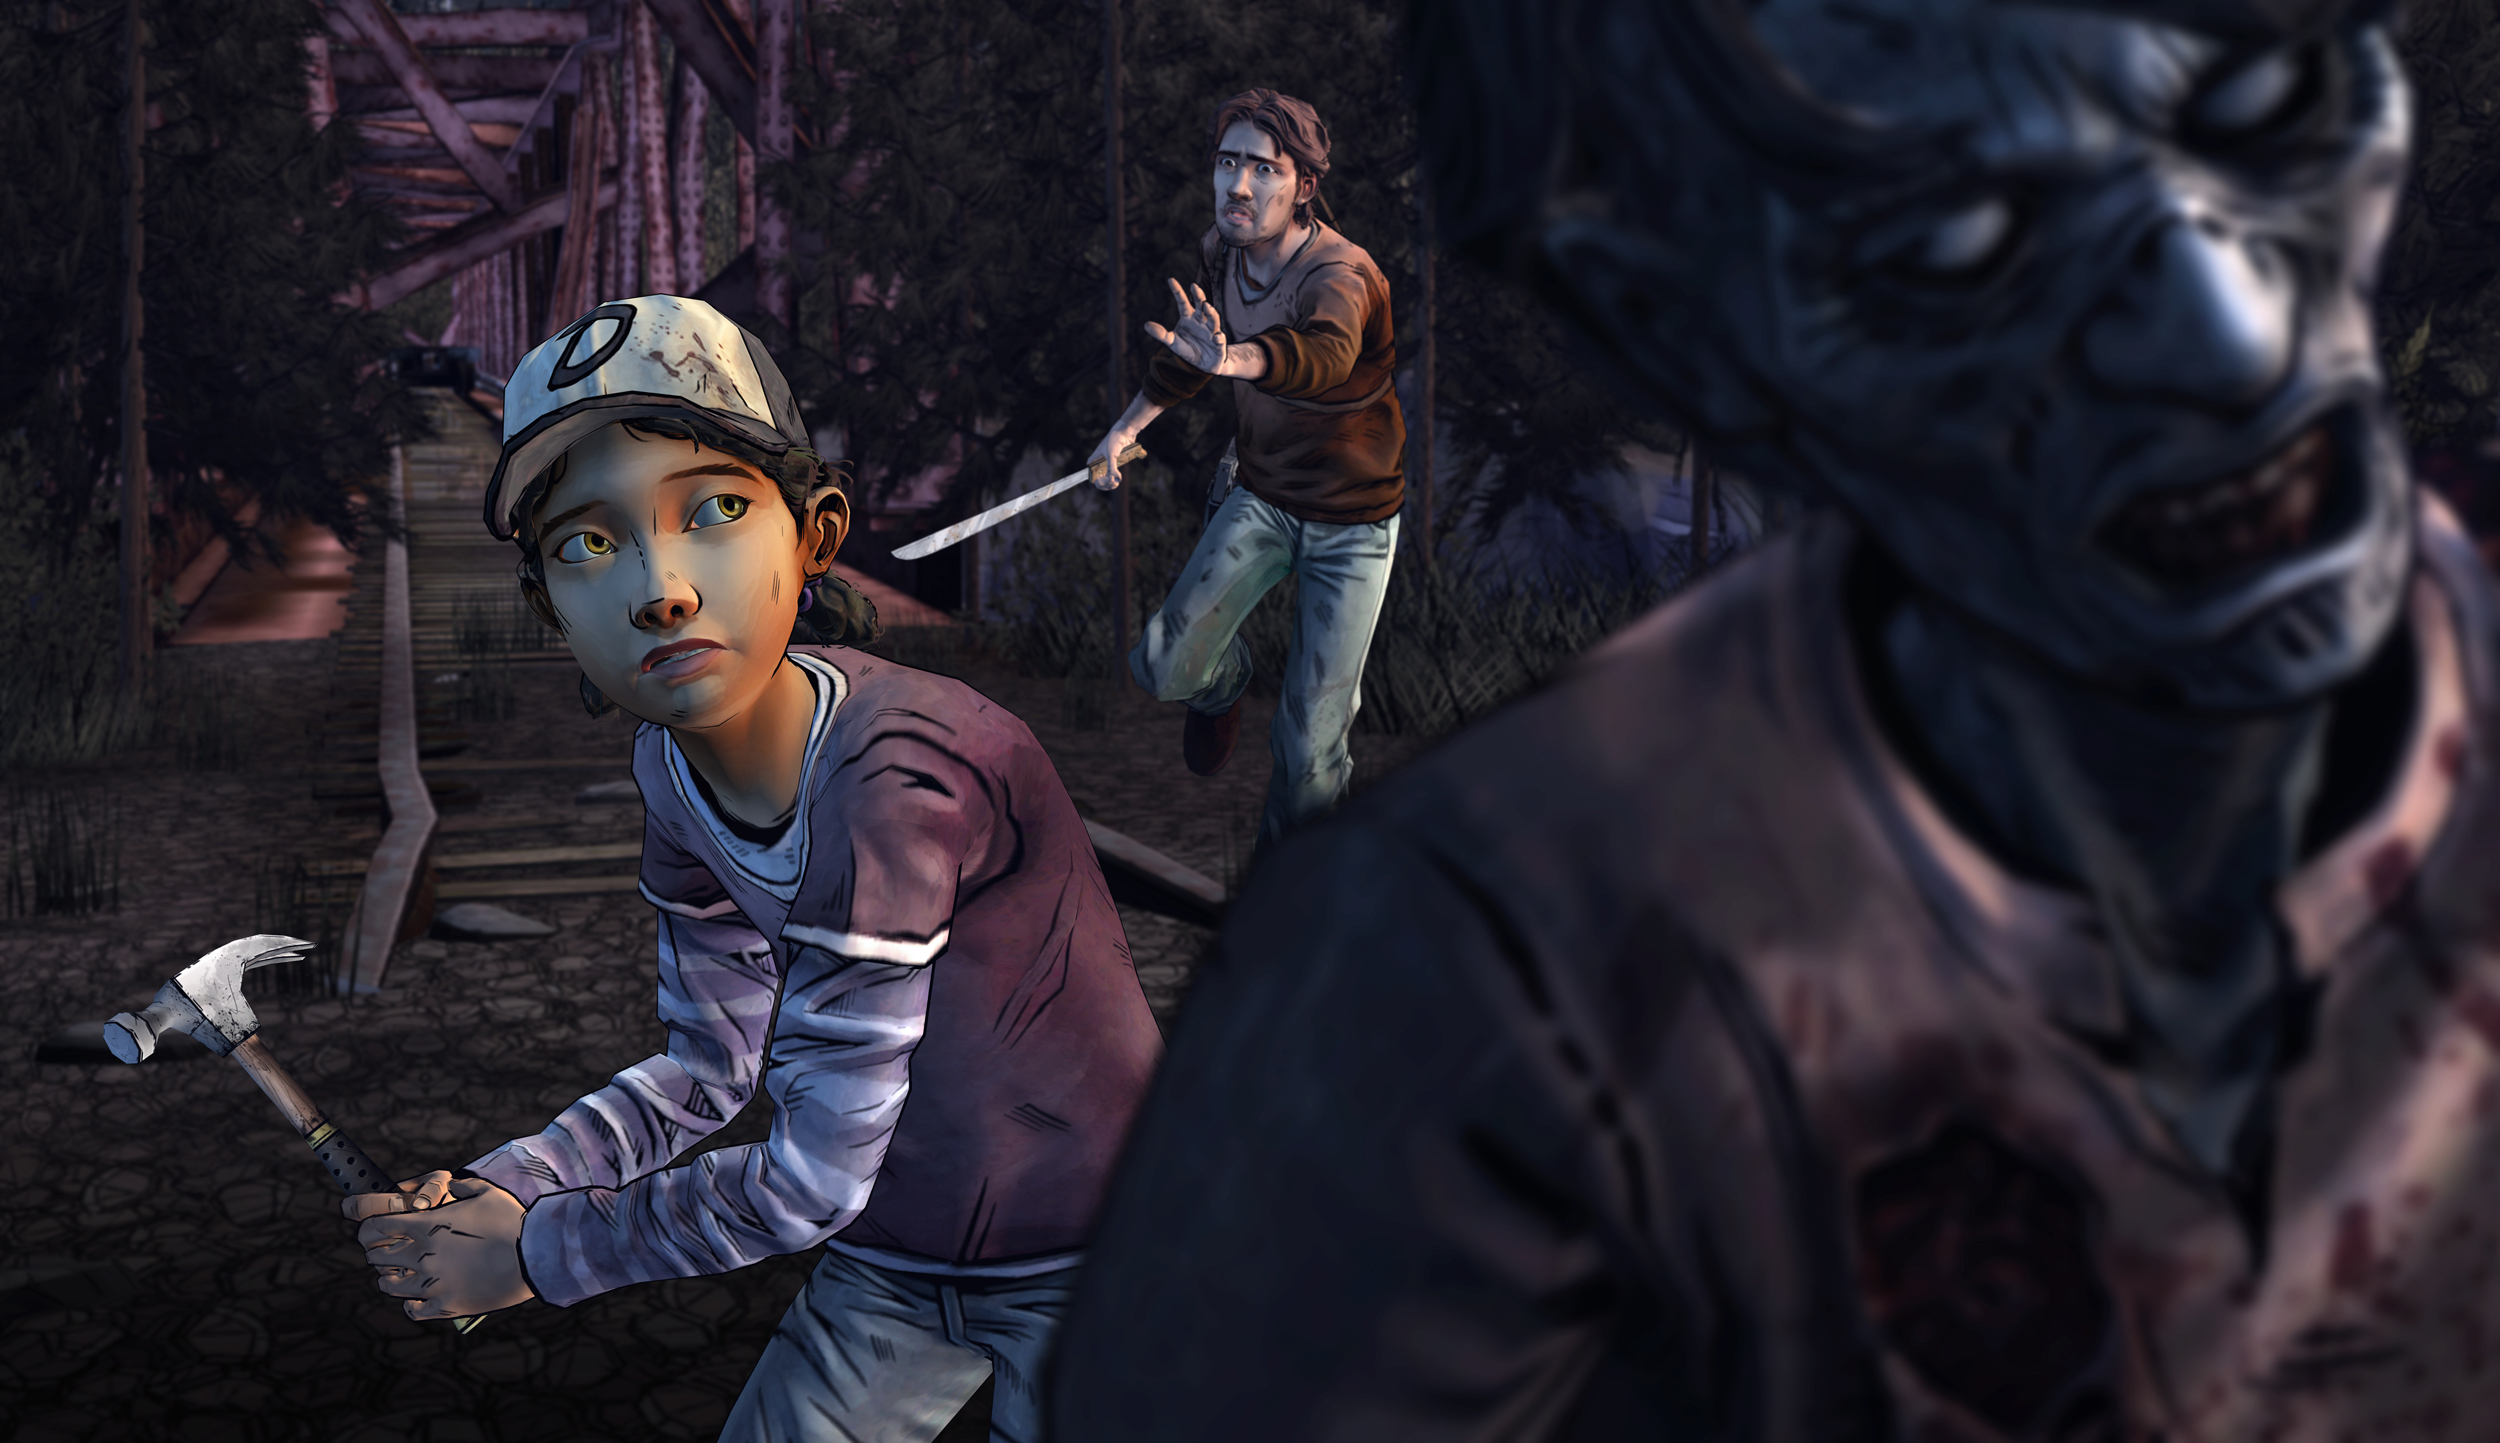 Artistry in Games lukeclemwalkerbridge New Screenshot For The Walking Dead Shows How Awesome The Episode Will Look Opinion  the walking dead season two the walking dead season one TellTale tales from the borderlands jurassic park a house divided